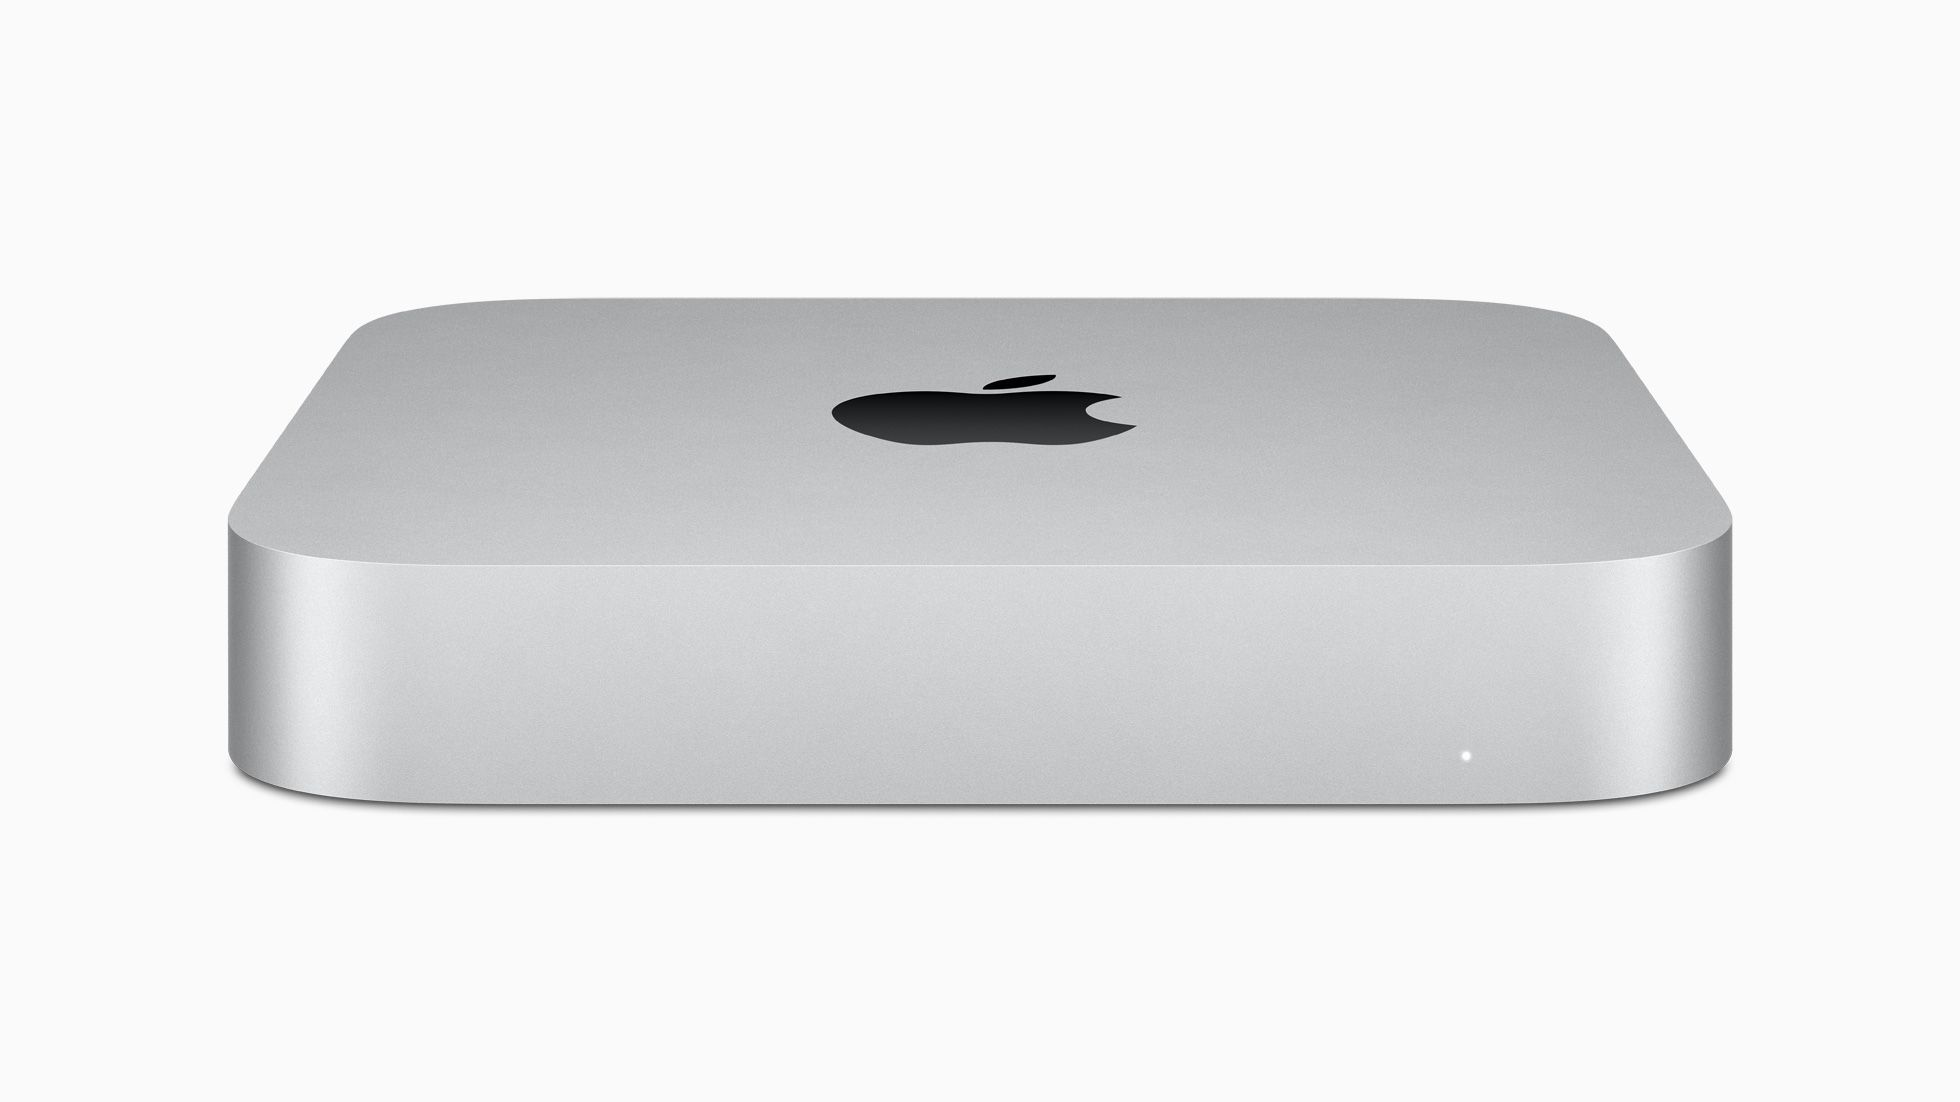 Apple revela la nueva Mac mini, también integra Apple Silicon